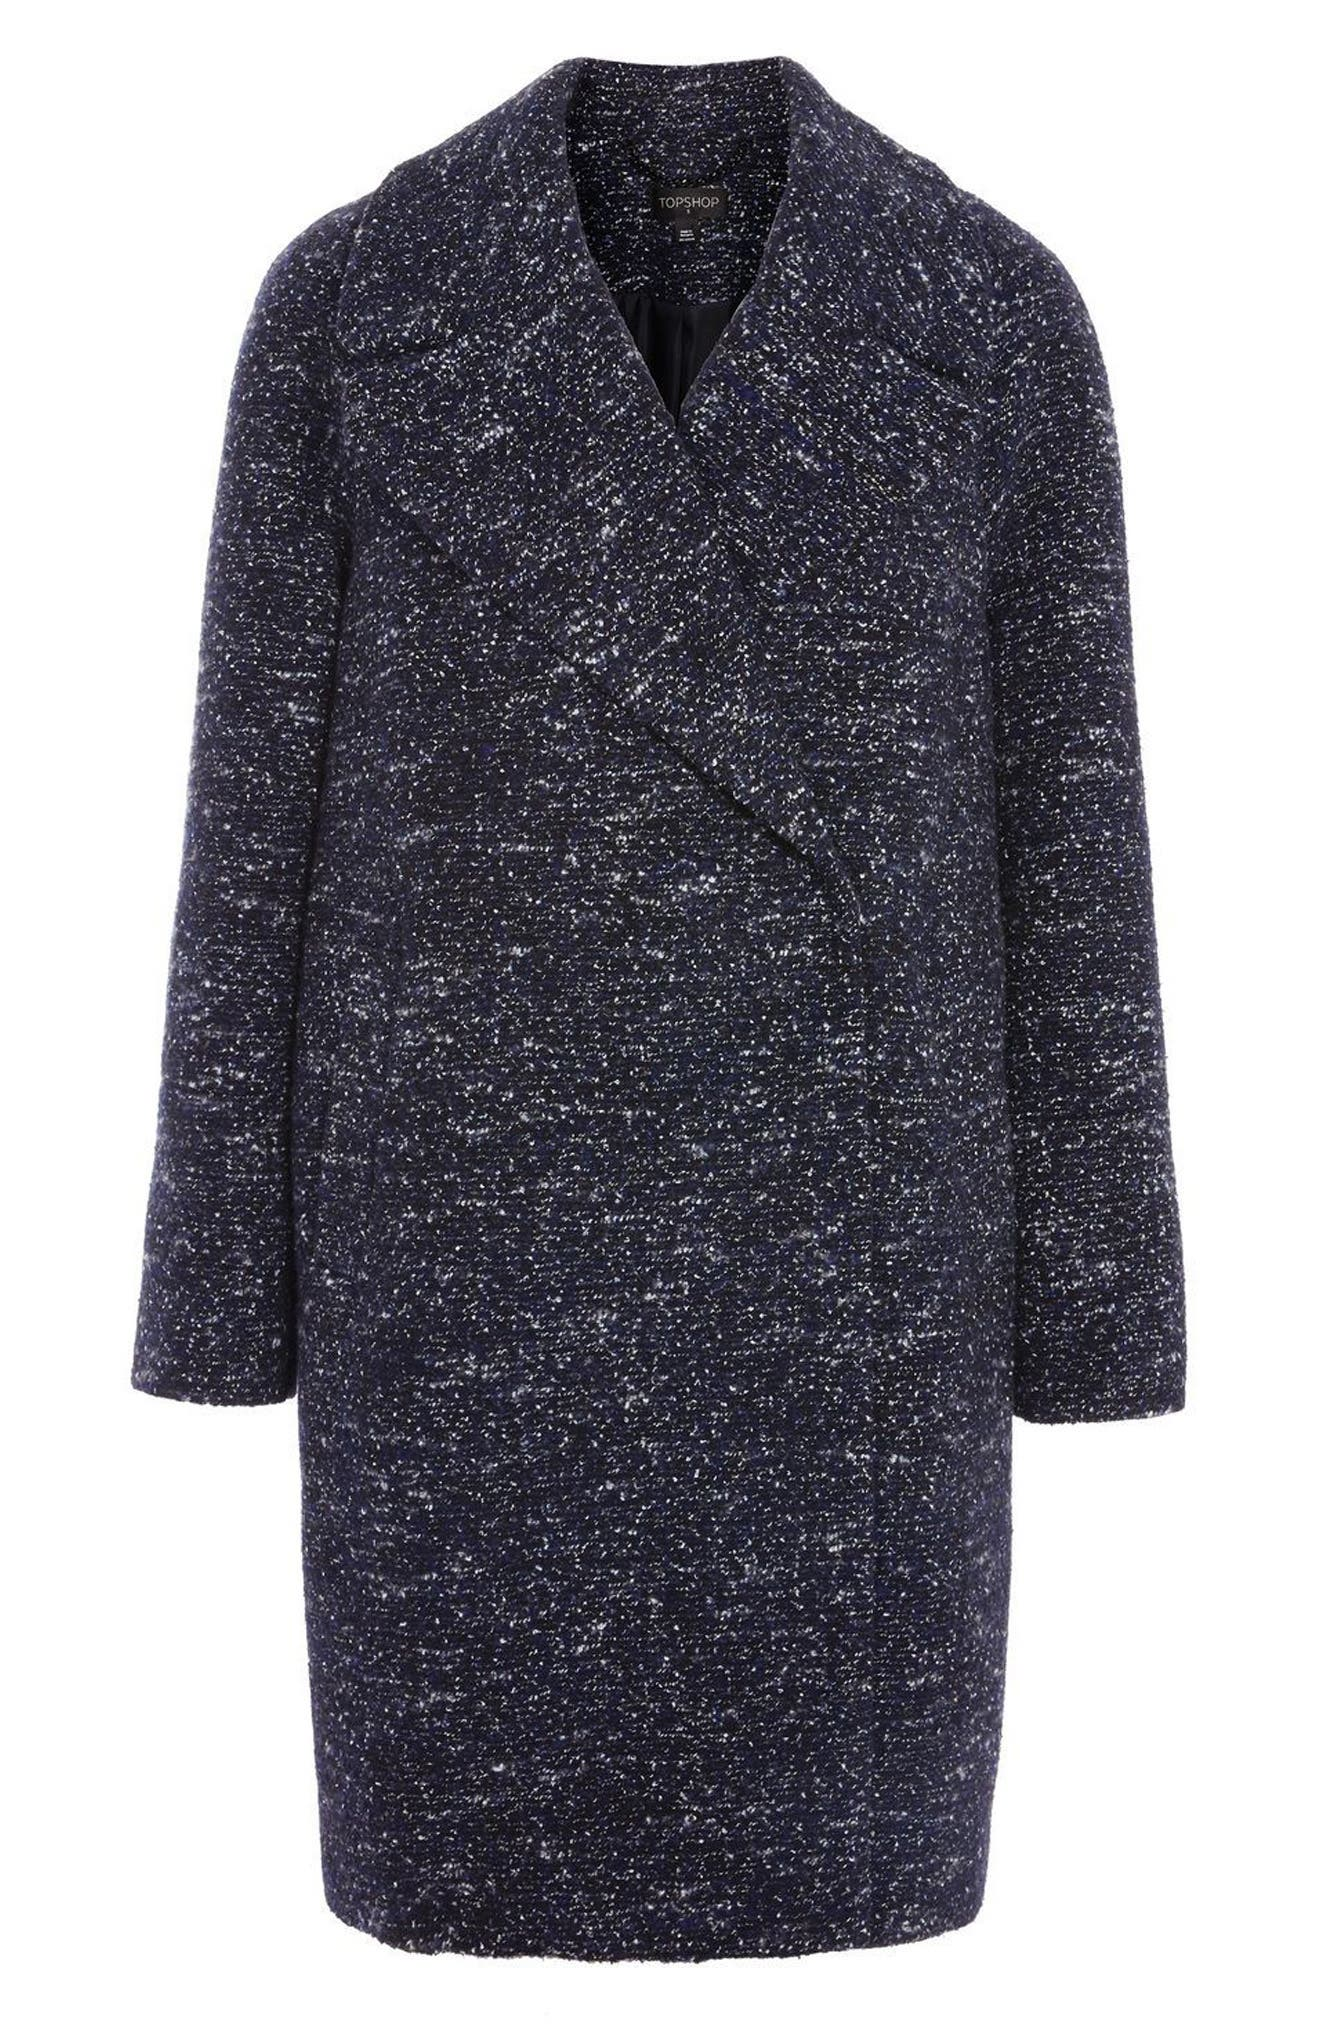 Bouclé Cocoon Coat,                             Alternate thumbnail 5, color,                             Navy Blue Multi